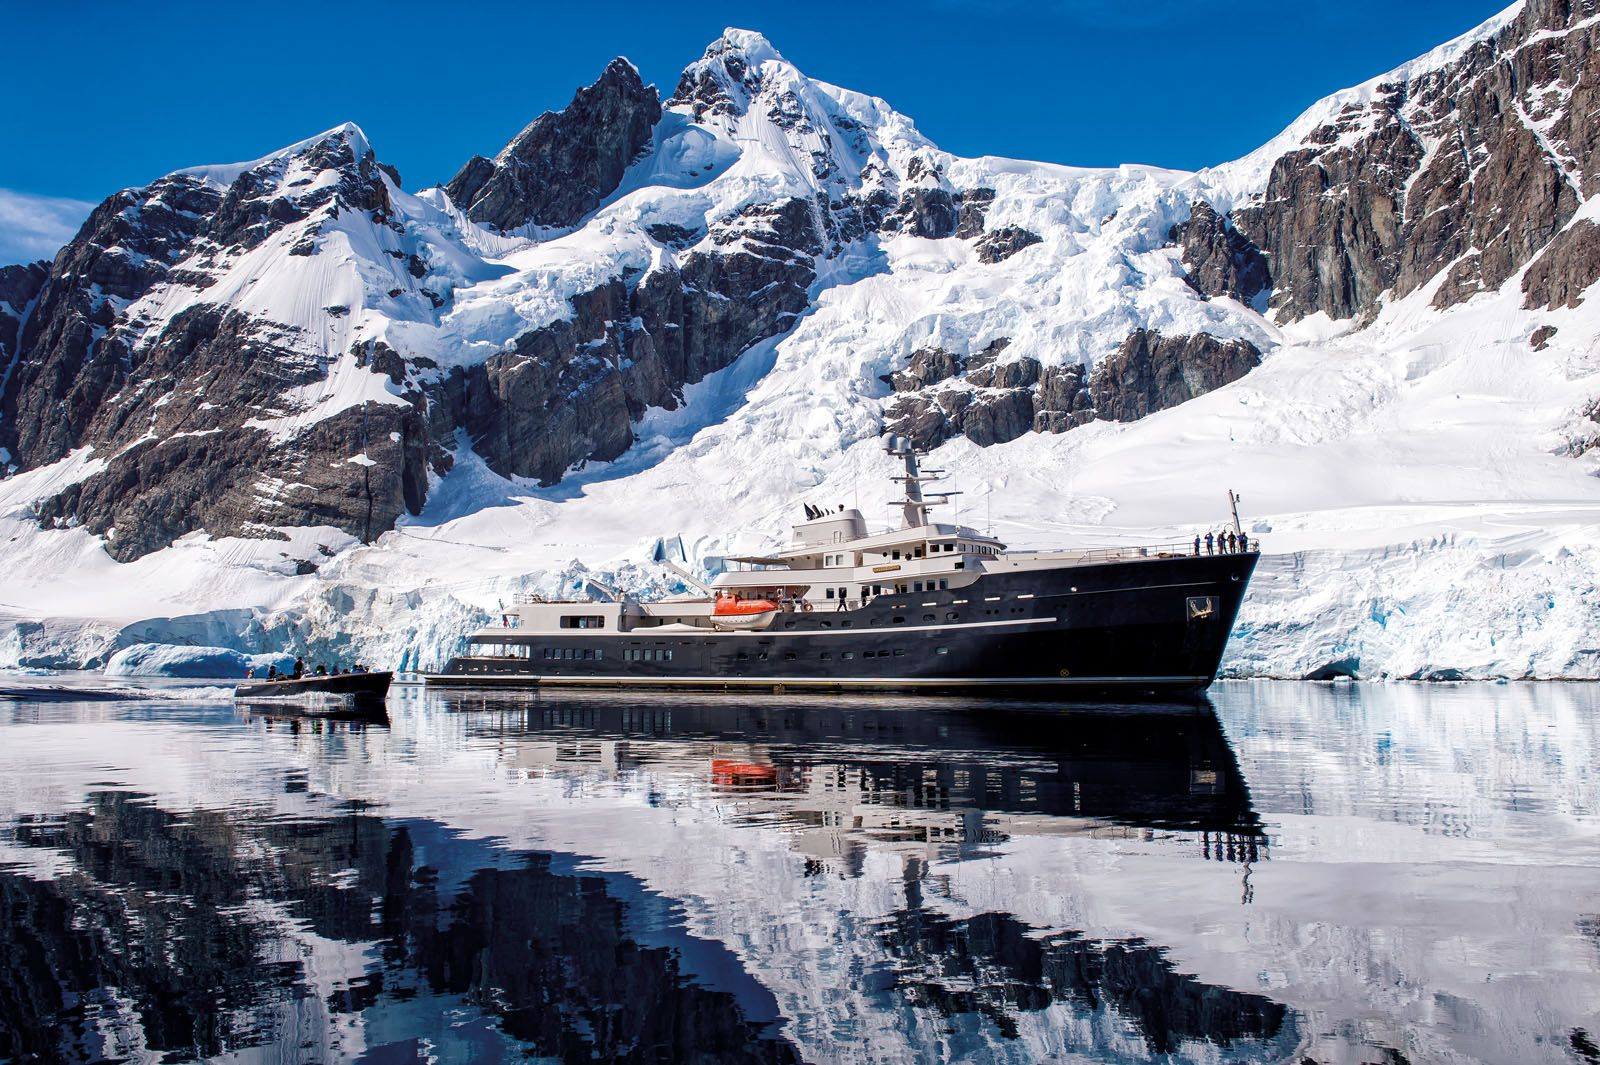 It is Now Possible to Sail on a Yacht to the Most Inaccessible Places on Earth in Luxury